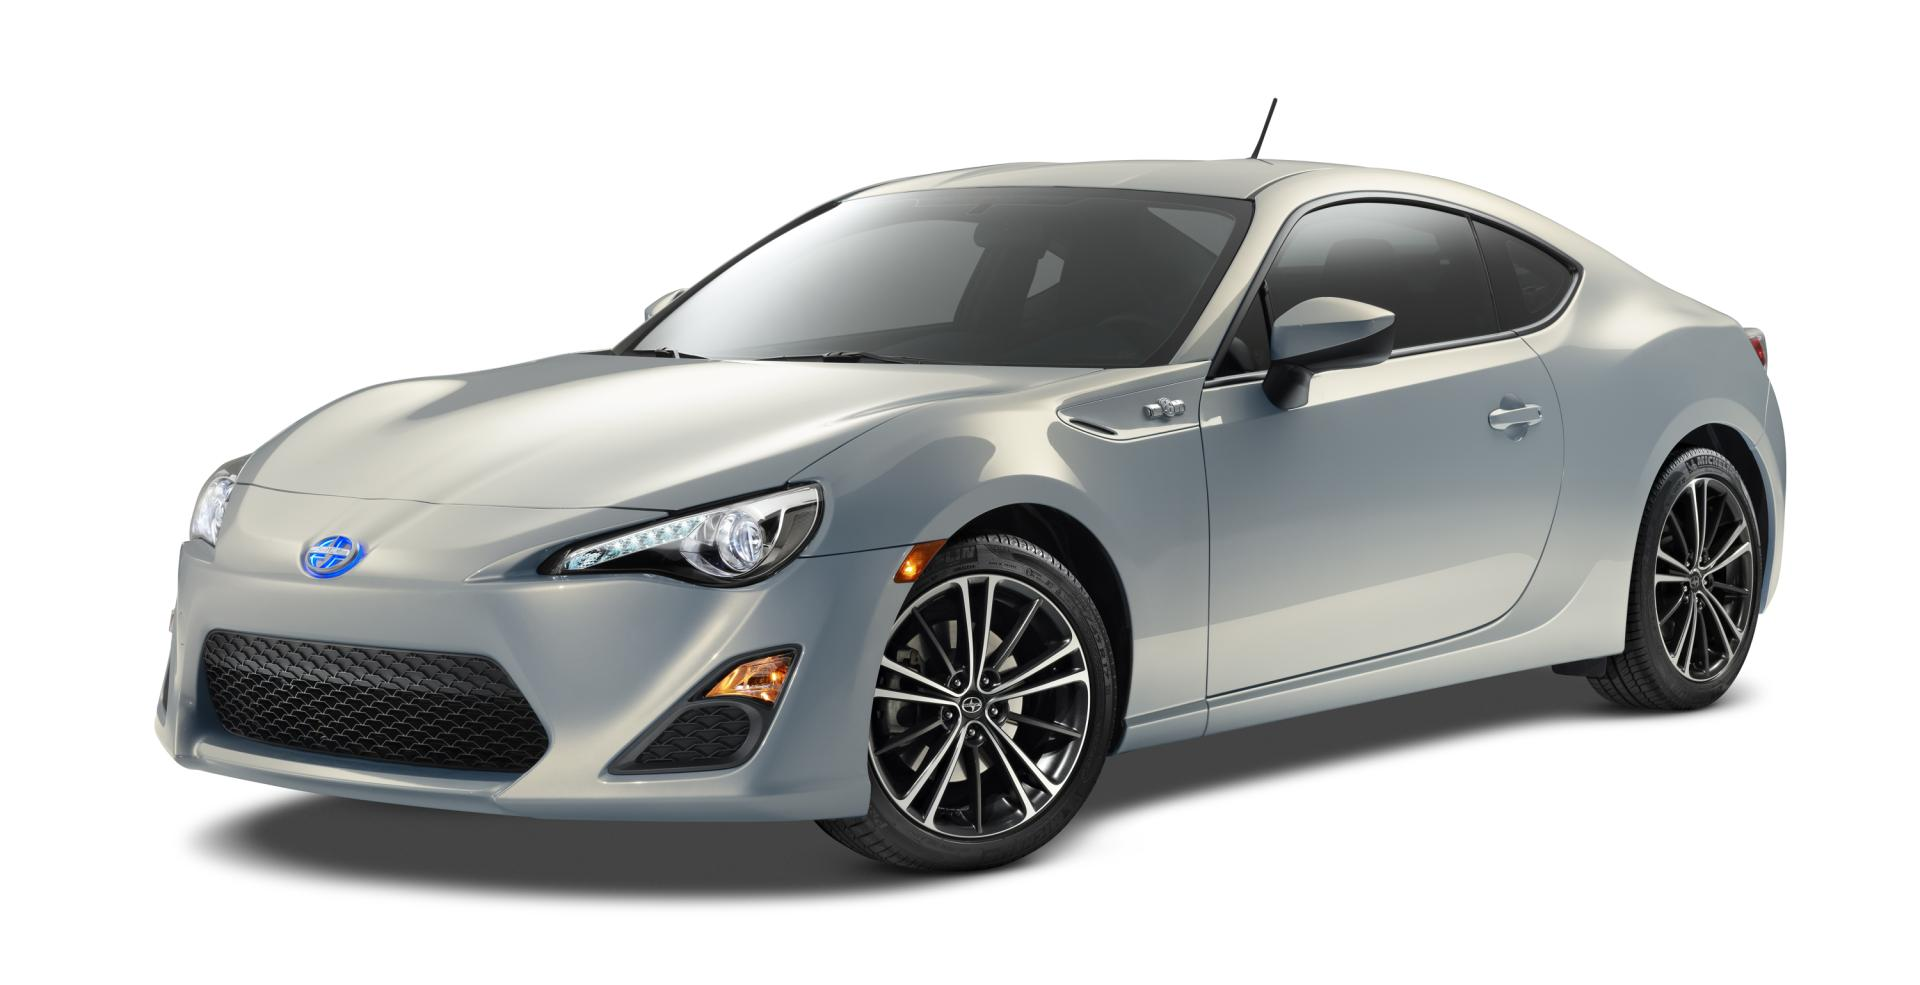 2014 scion fr s series 10 technical specifications and. Black Bedroom Furniture Sets. Home Design Ideas